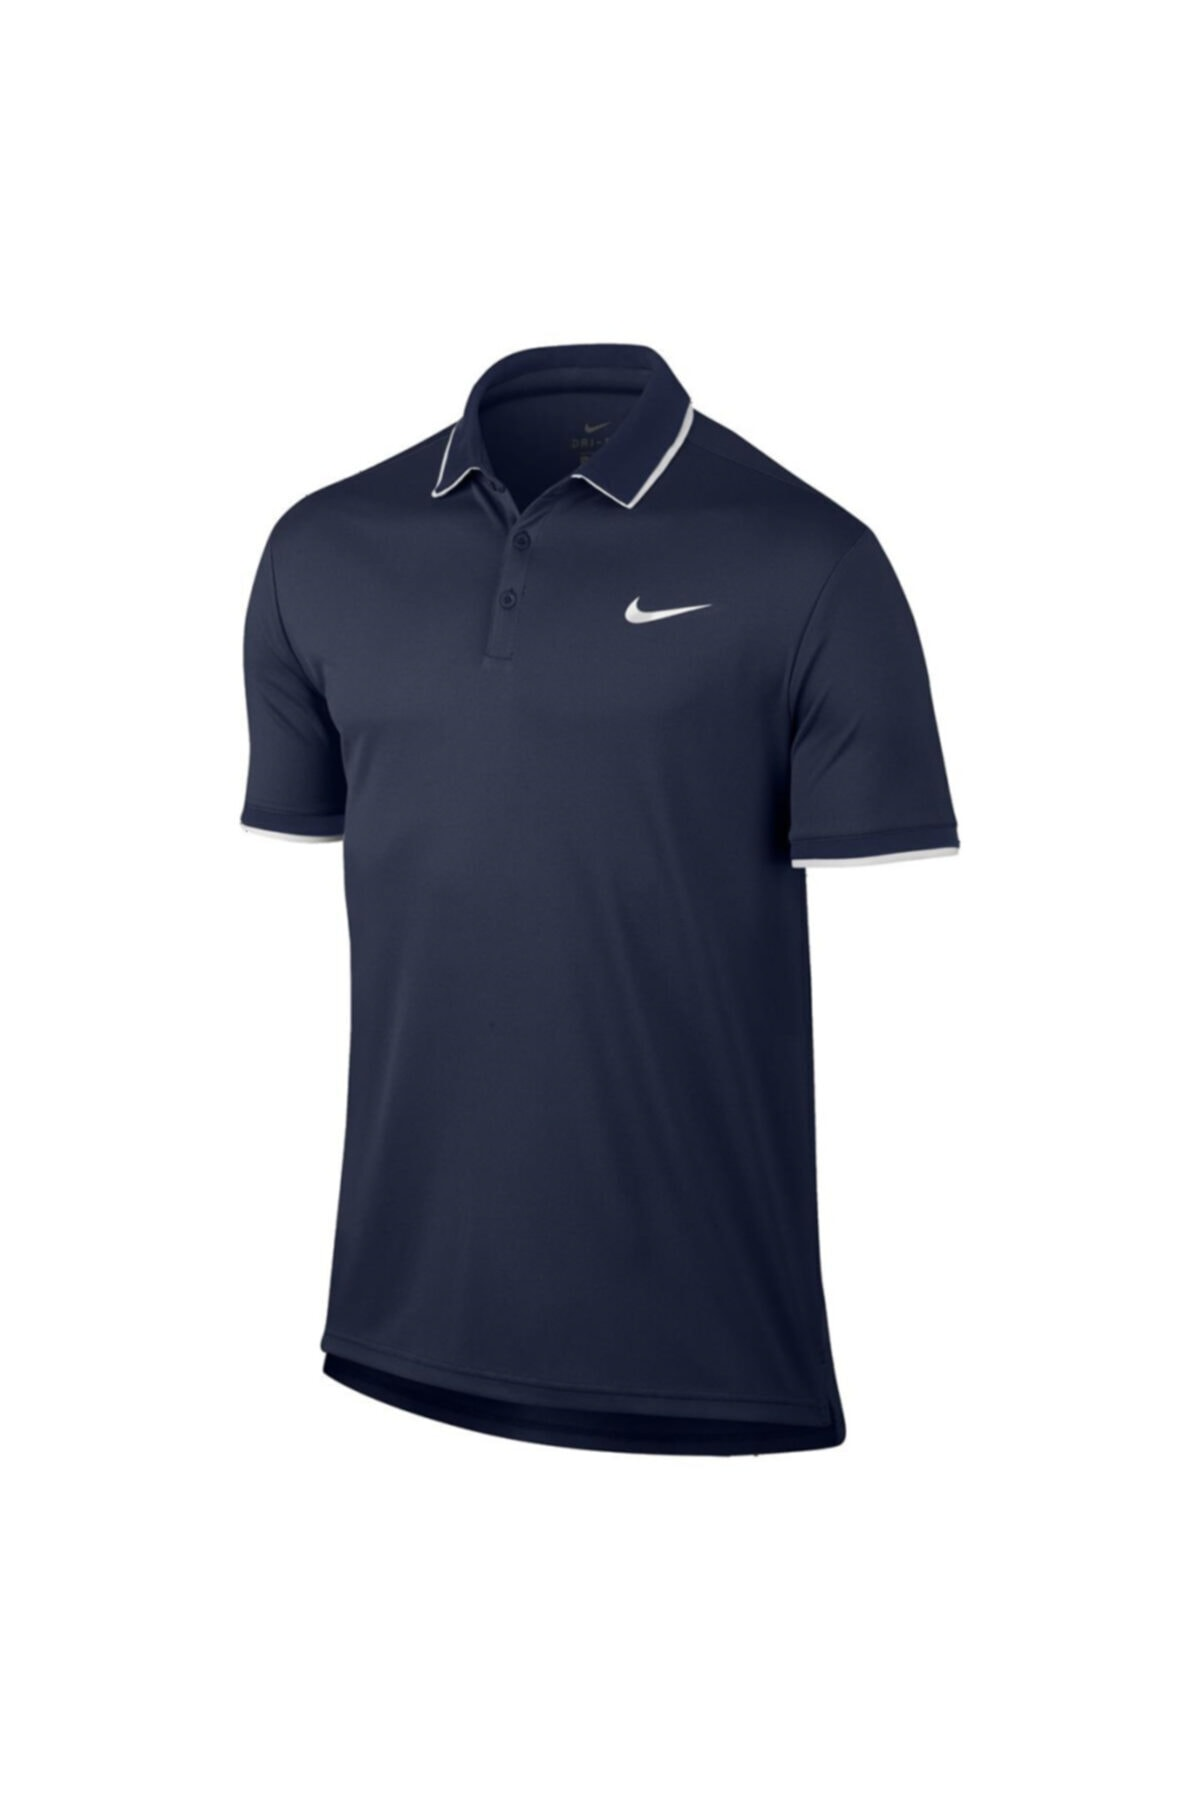 Nike Nkct Polo Team 830849-410 T-shirt 1